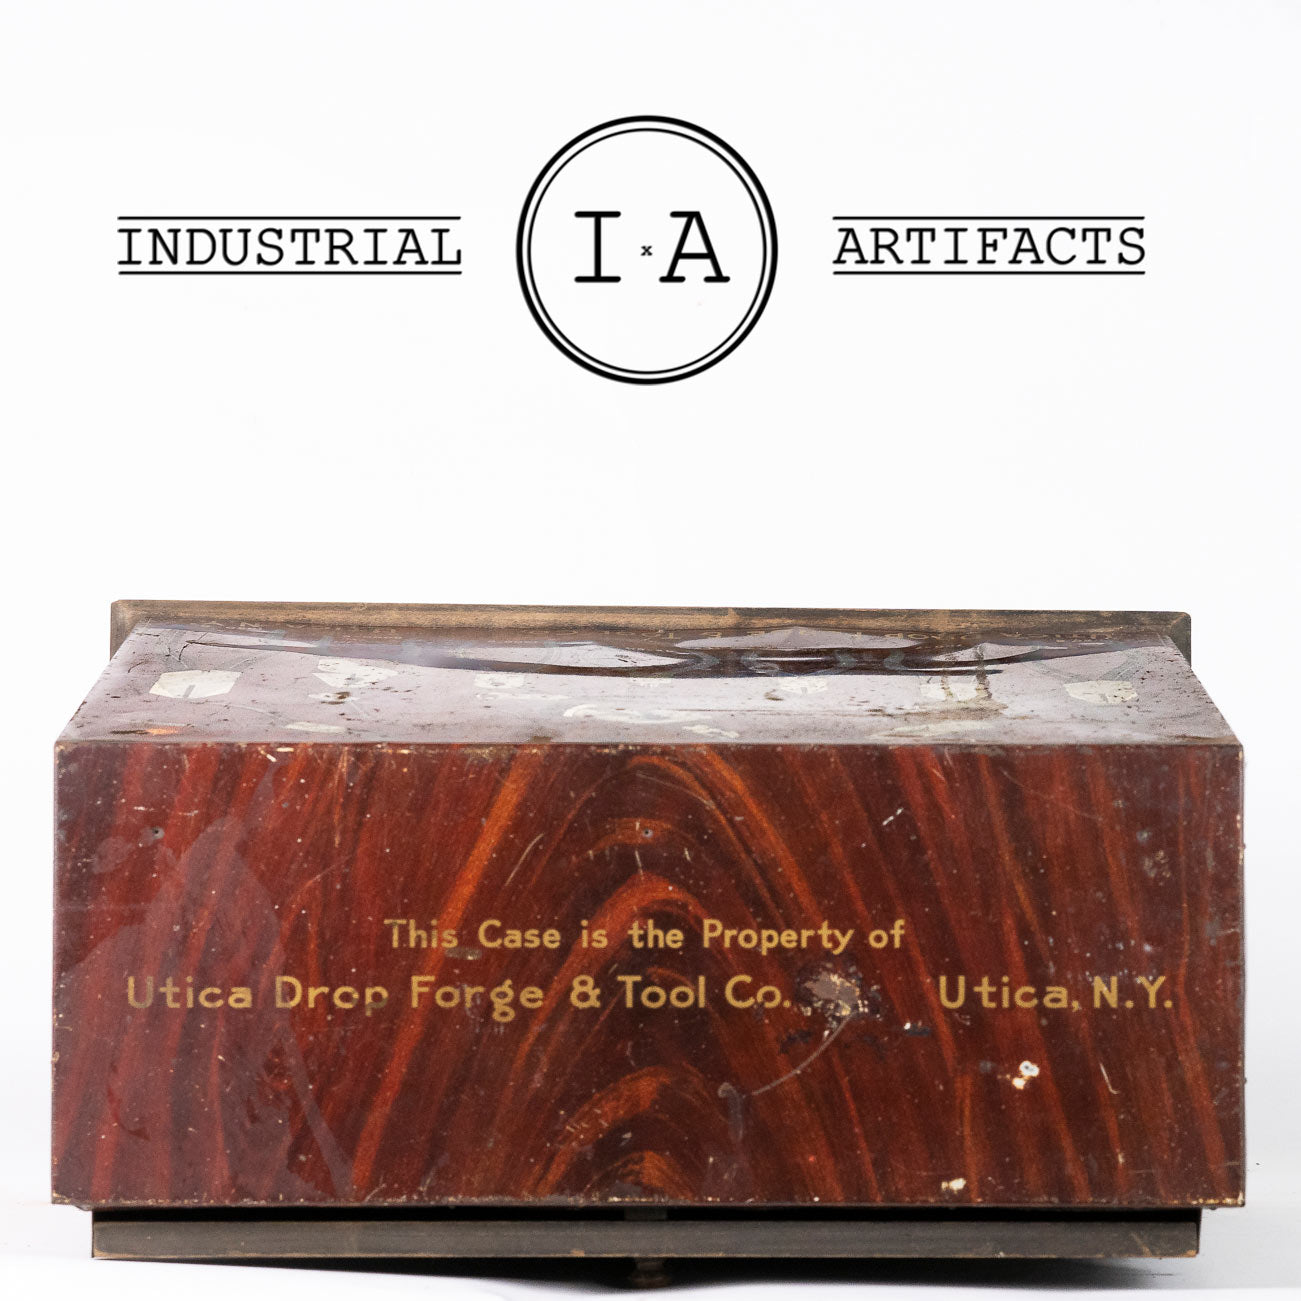 C. 1920 Utica Drop Forge & Tool Co. Case